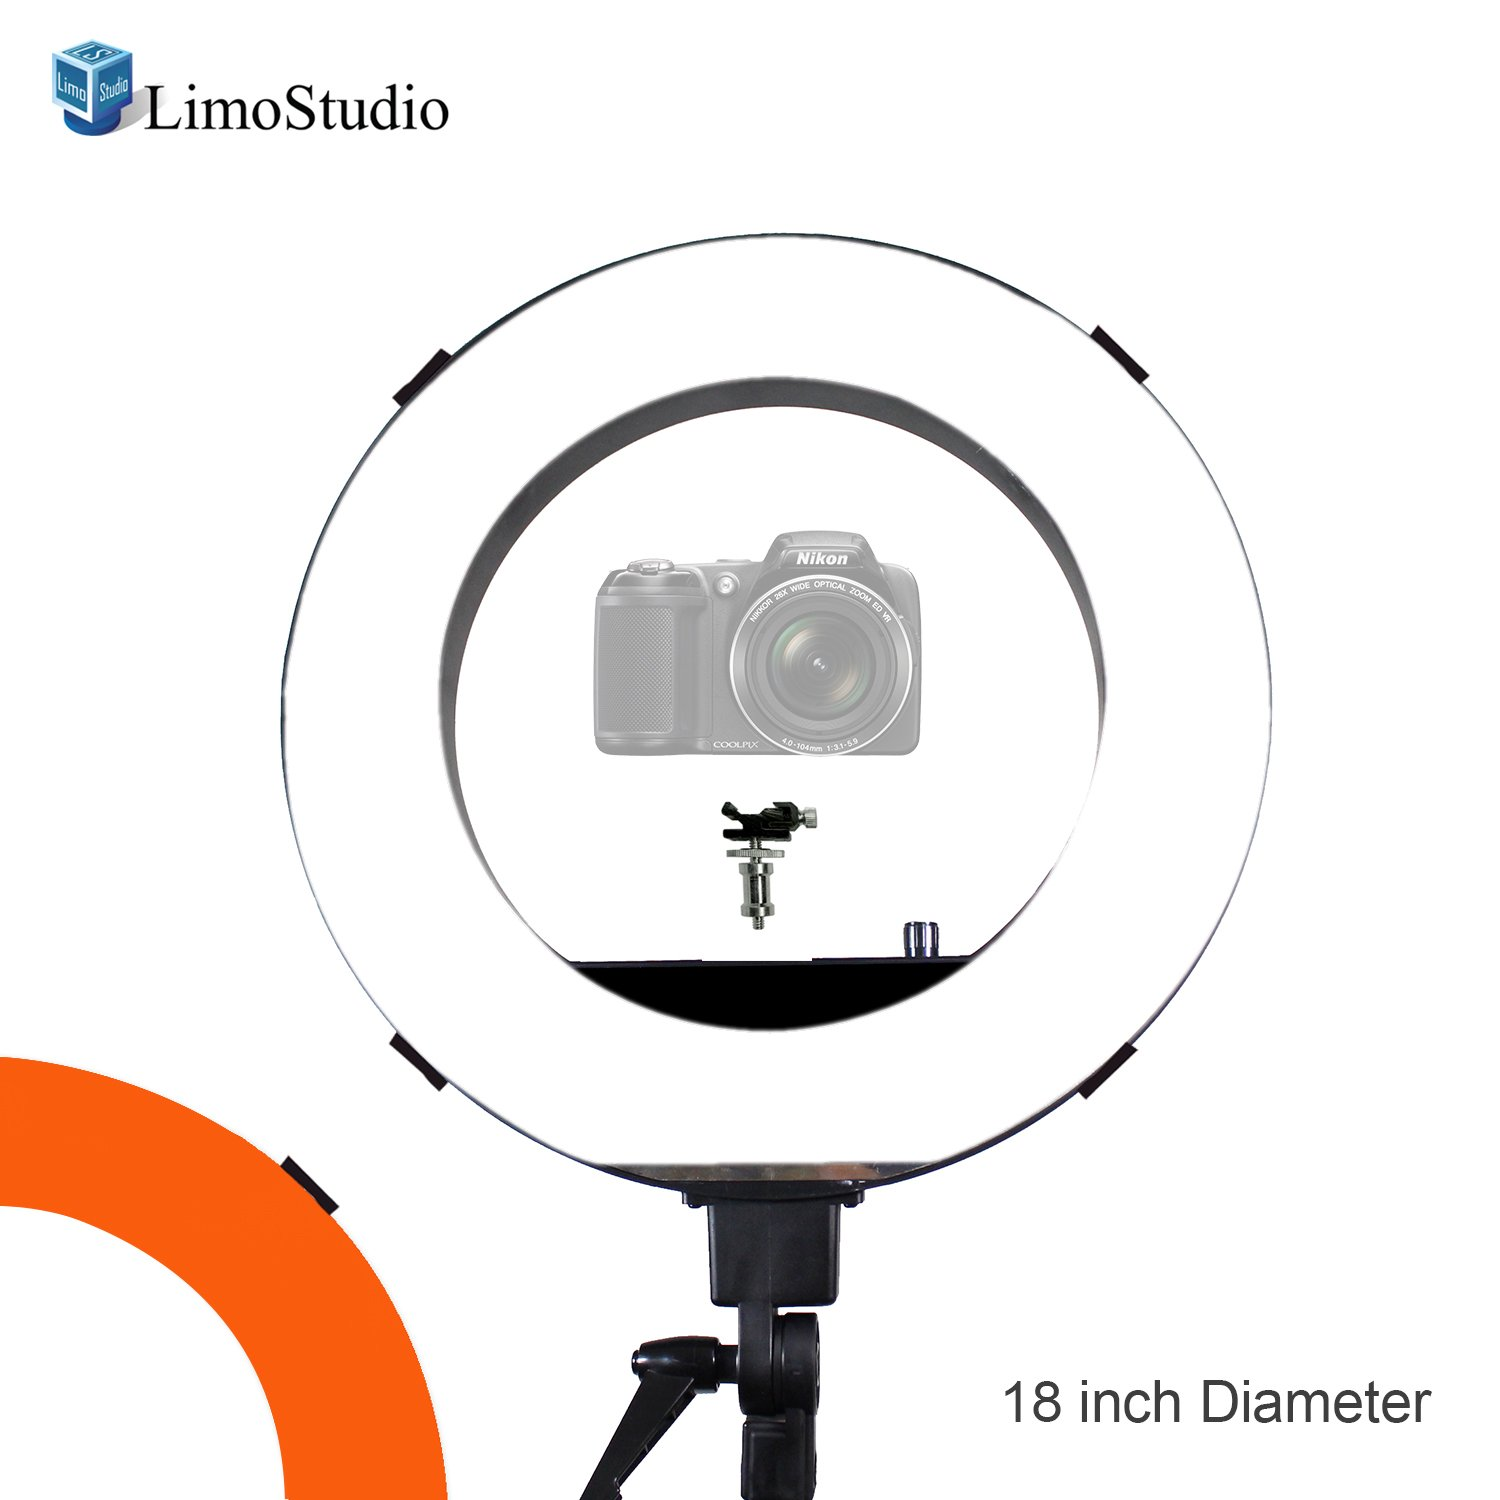 LimoStudio 18 inch Fluorescent 5500K Dimmable Ring Light and Portrait Light with Ring Light Diffuser Cloth (White, Orange) for less Contrast and Soft Lights, Warm to Cool Colors, AGG2328V2